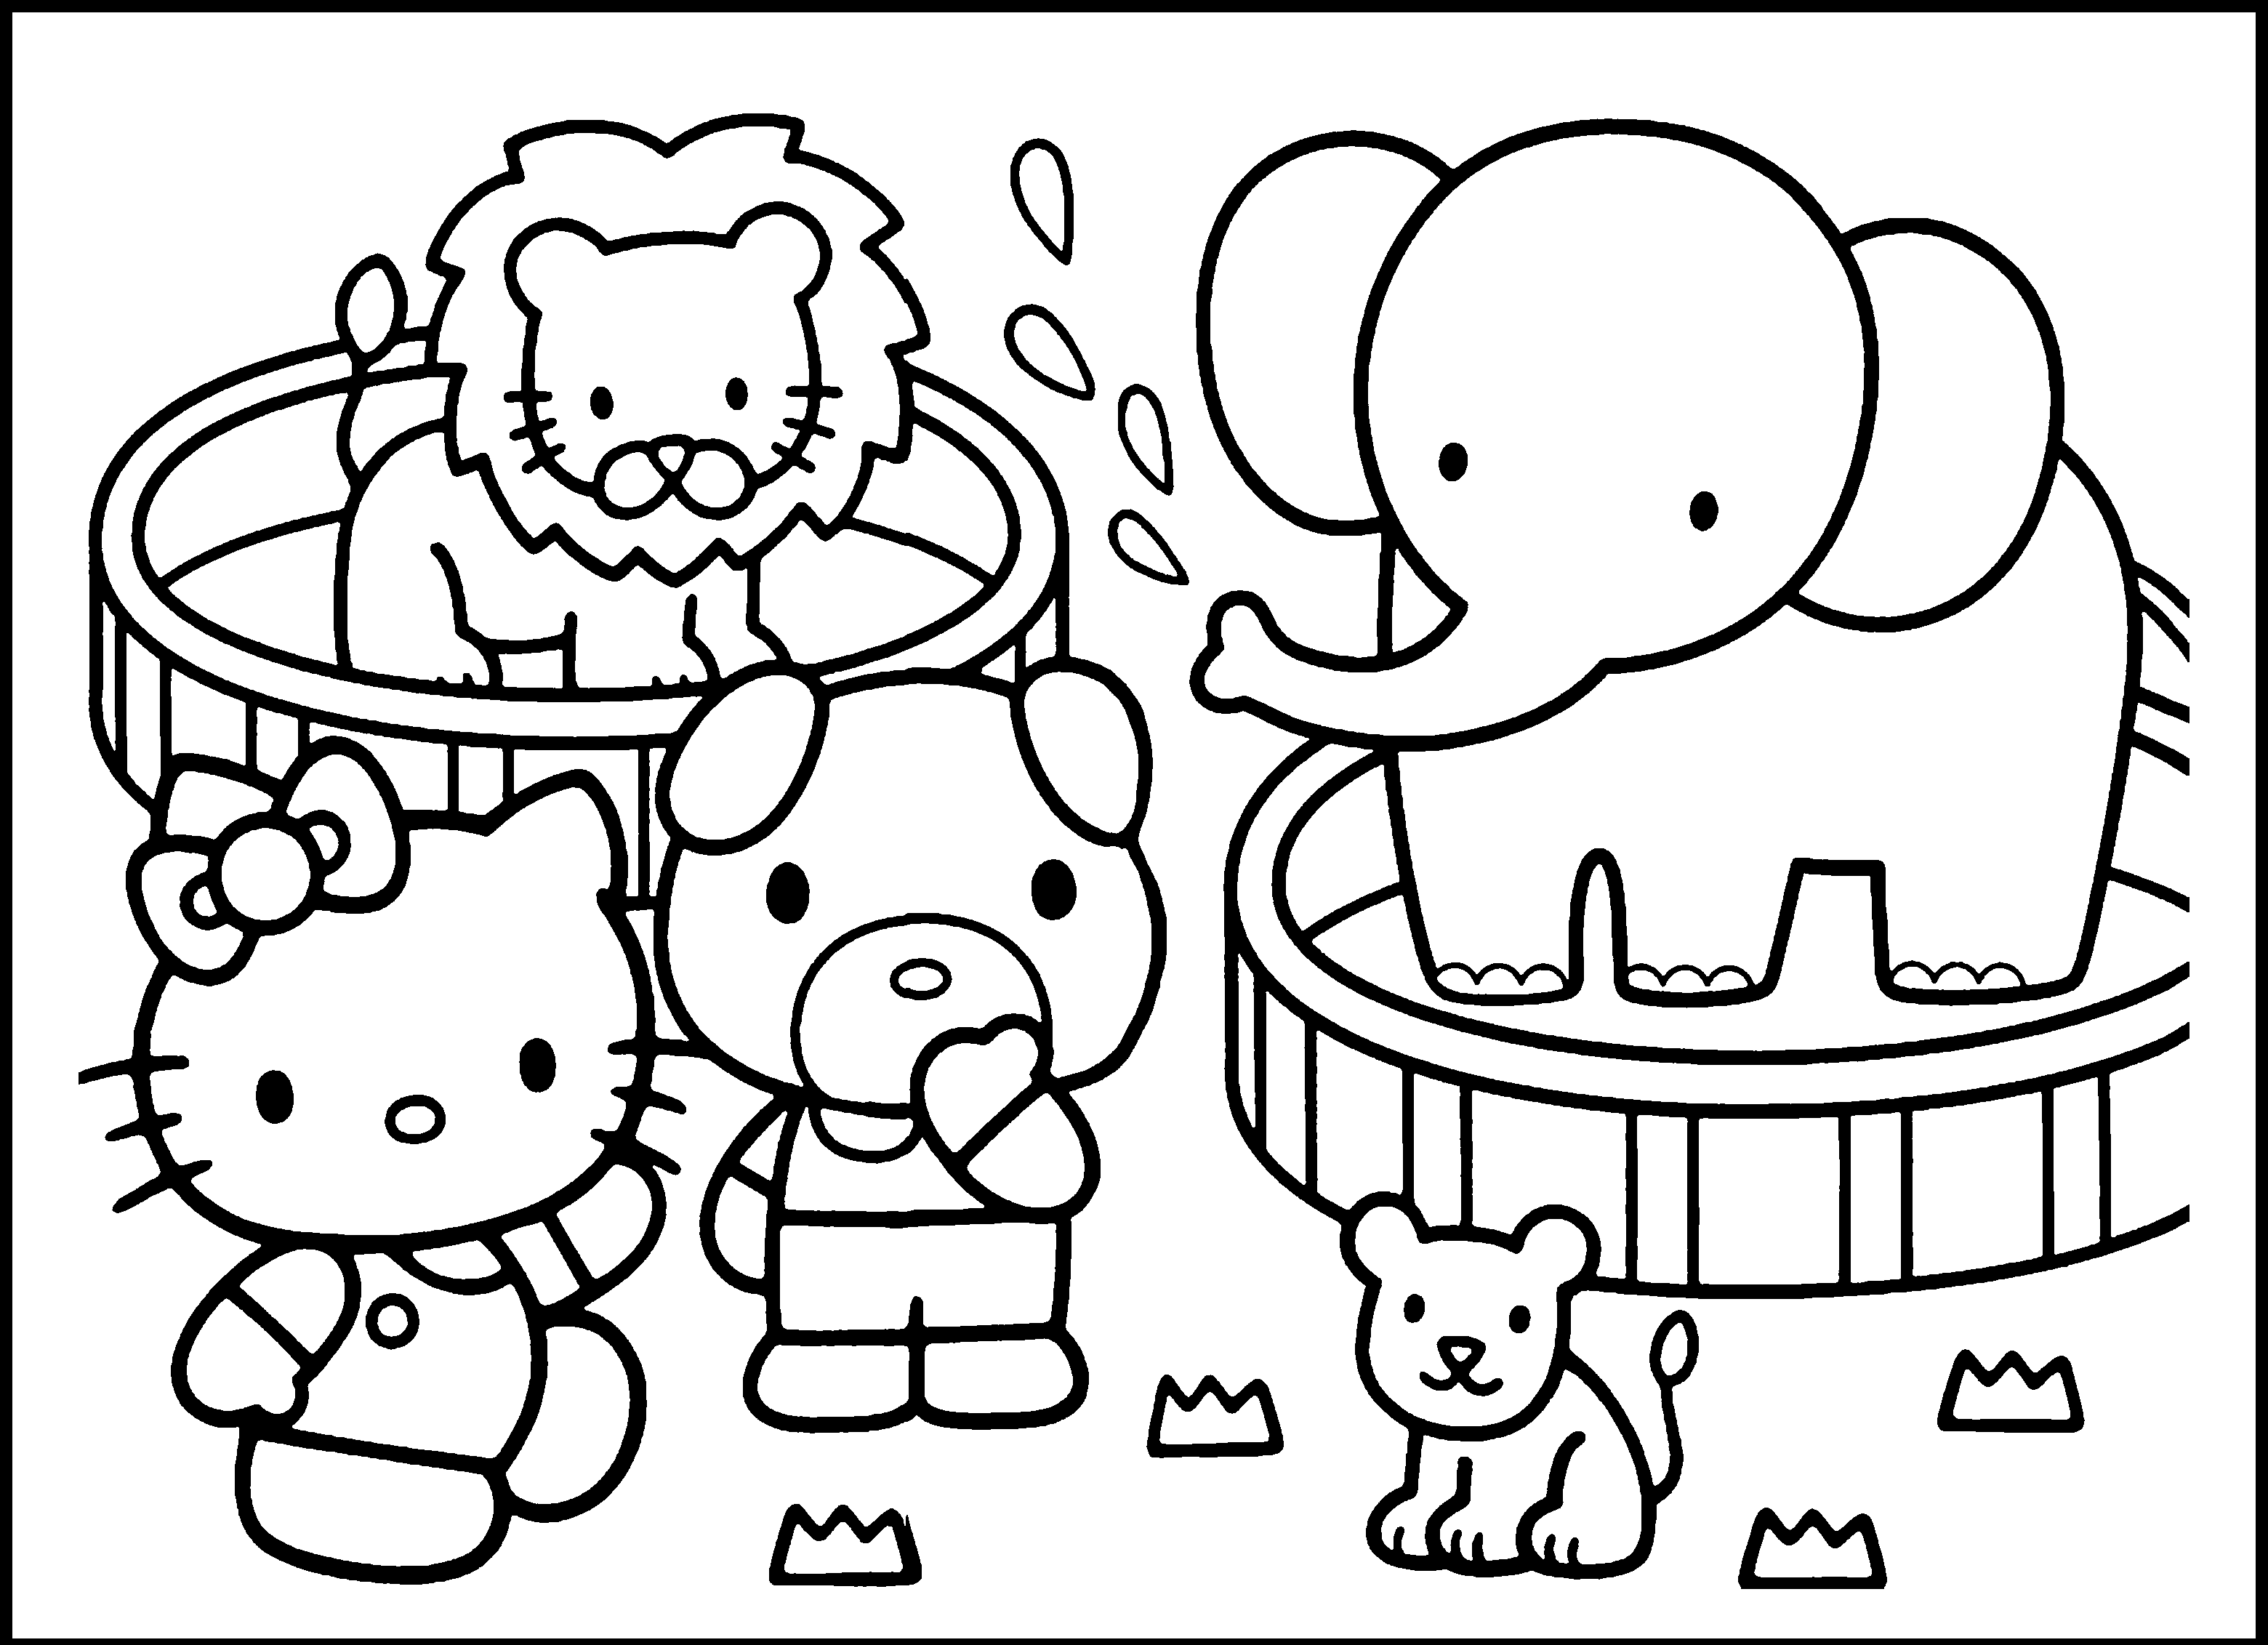 3120x2263 Zoo Coloring Pages Coloringsuite Com Ribsvigyapan Suzys Zoo Zoo